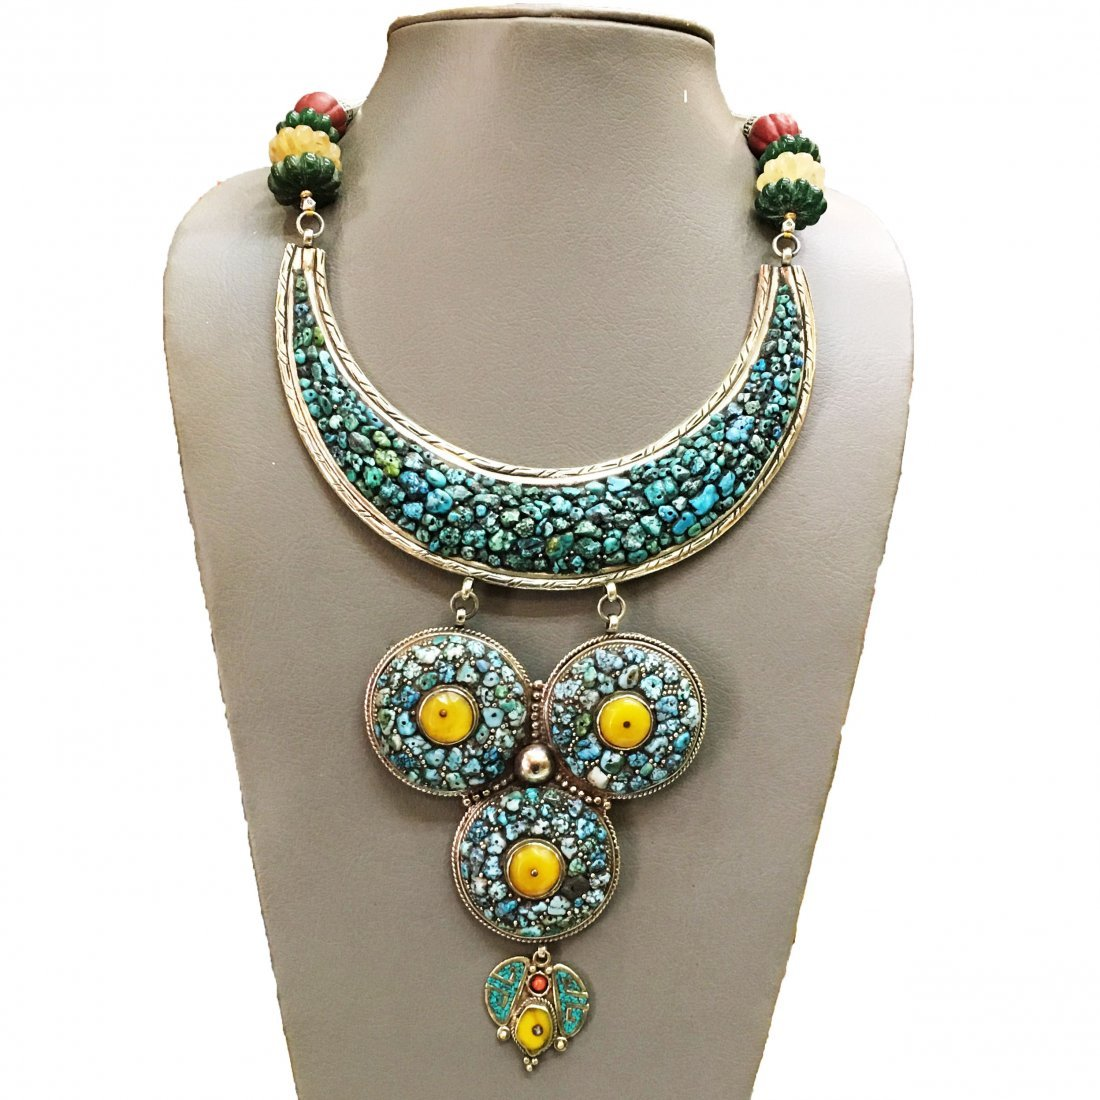 Vintage Ethnic Handmade Turquoise & Amber Necklace